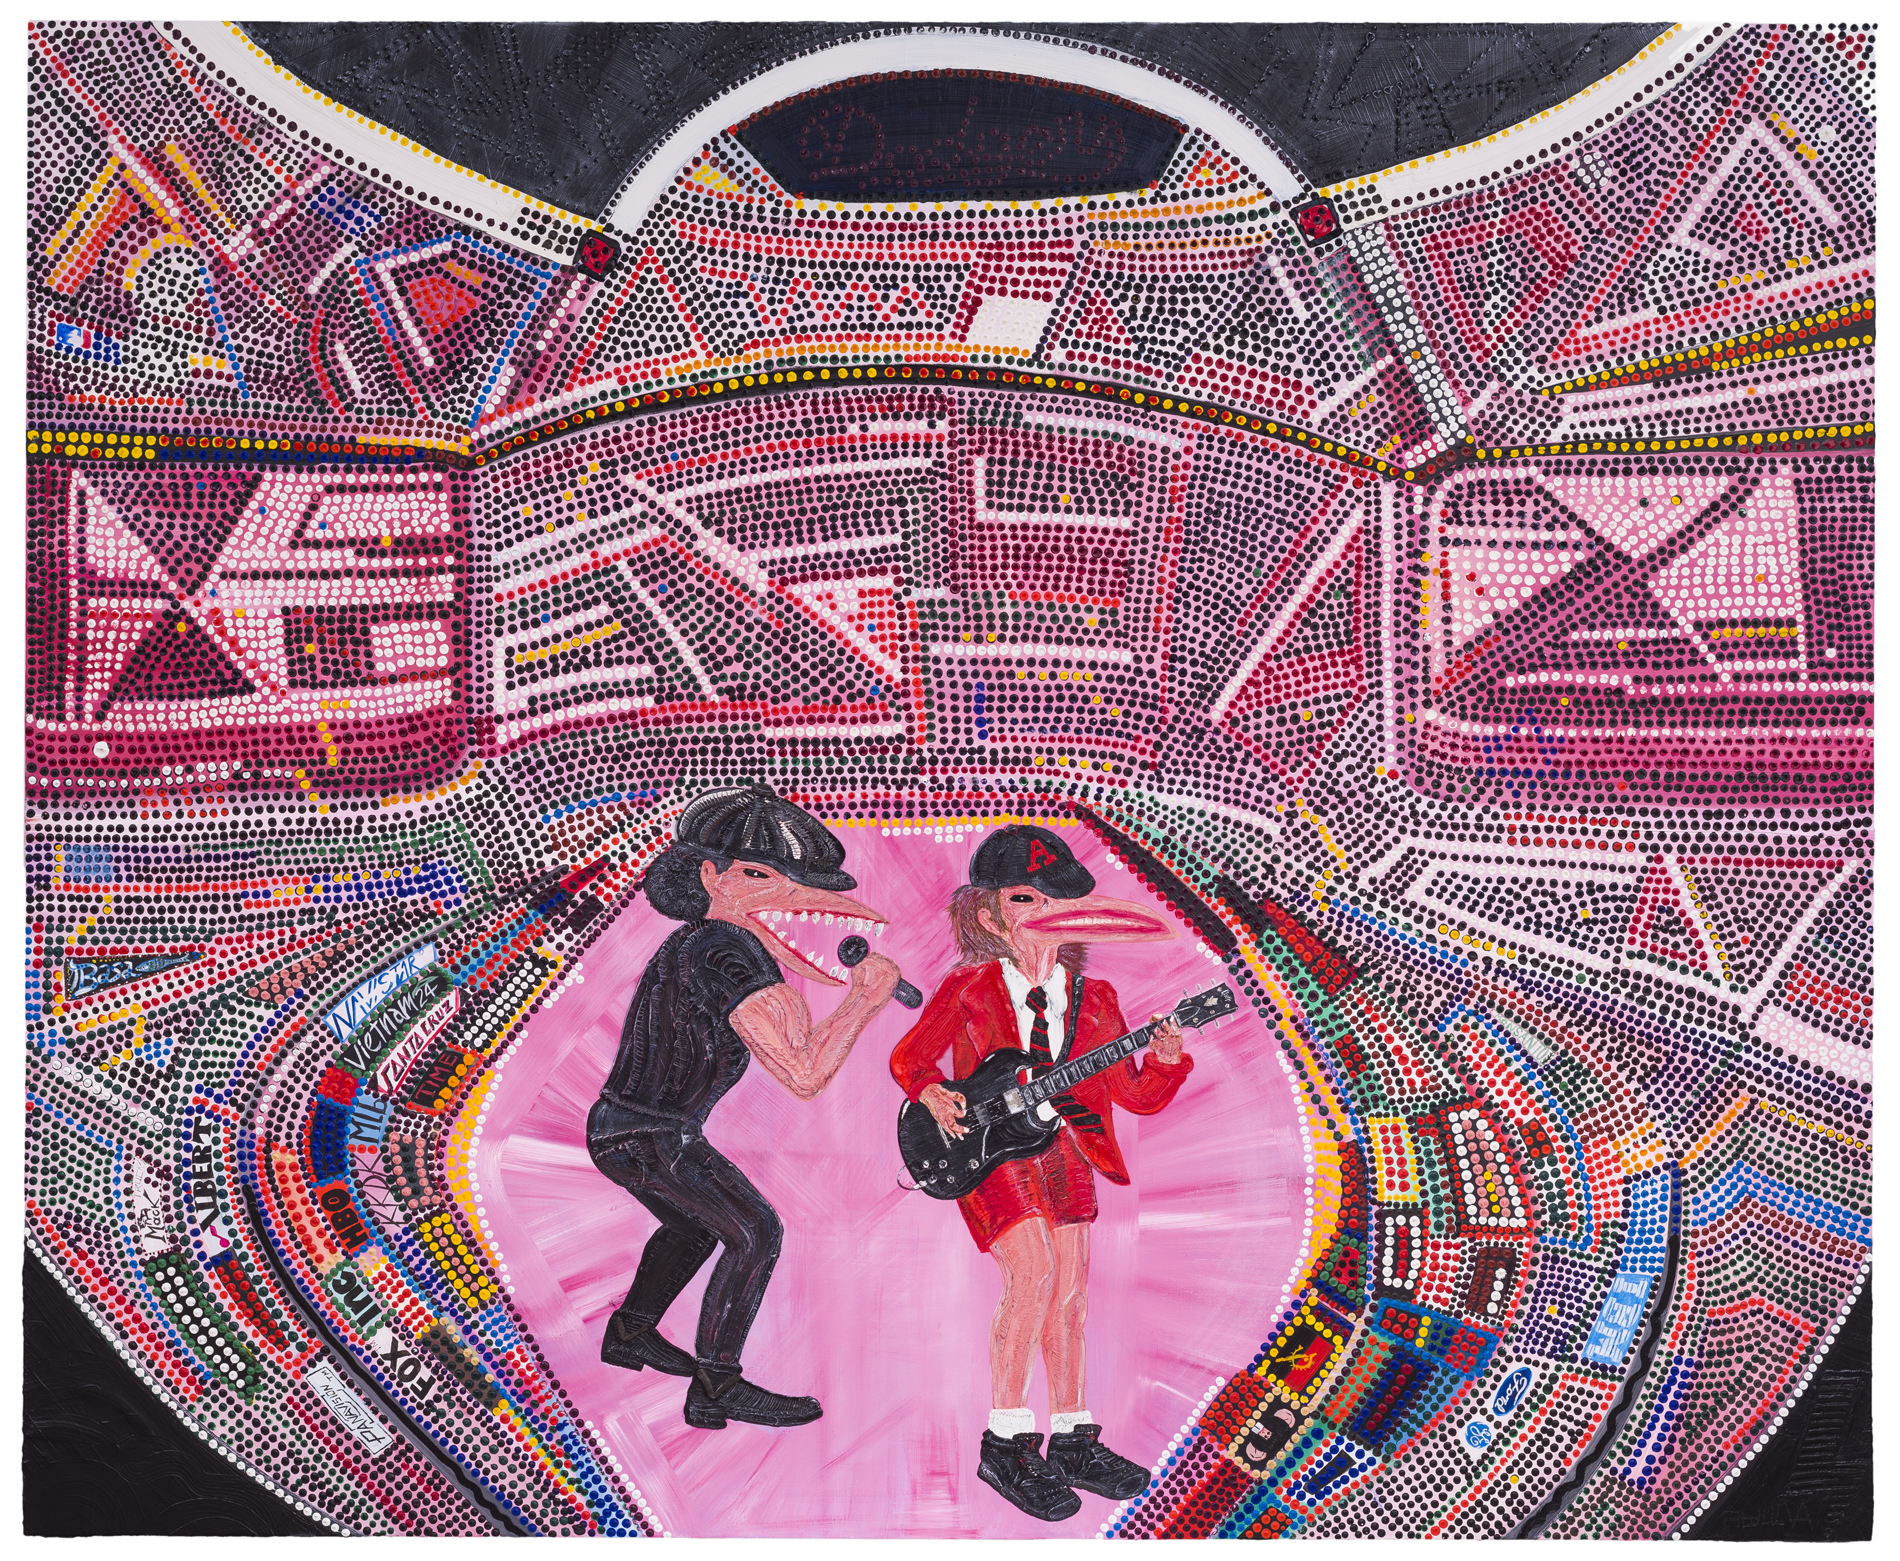 AC/DC Artwork. Abdul Vas. Live At Dodgers Stadium 2015. Hypebeast, Saul Bass. Baseball Paintings, Highway To Hell, Truck NFL